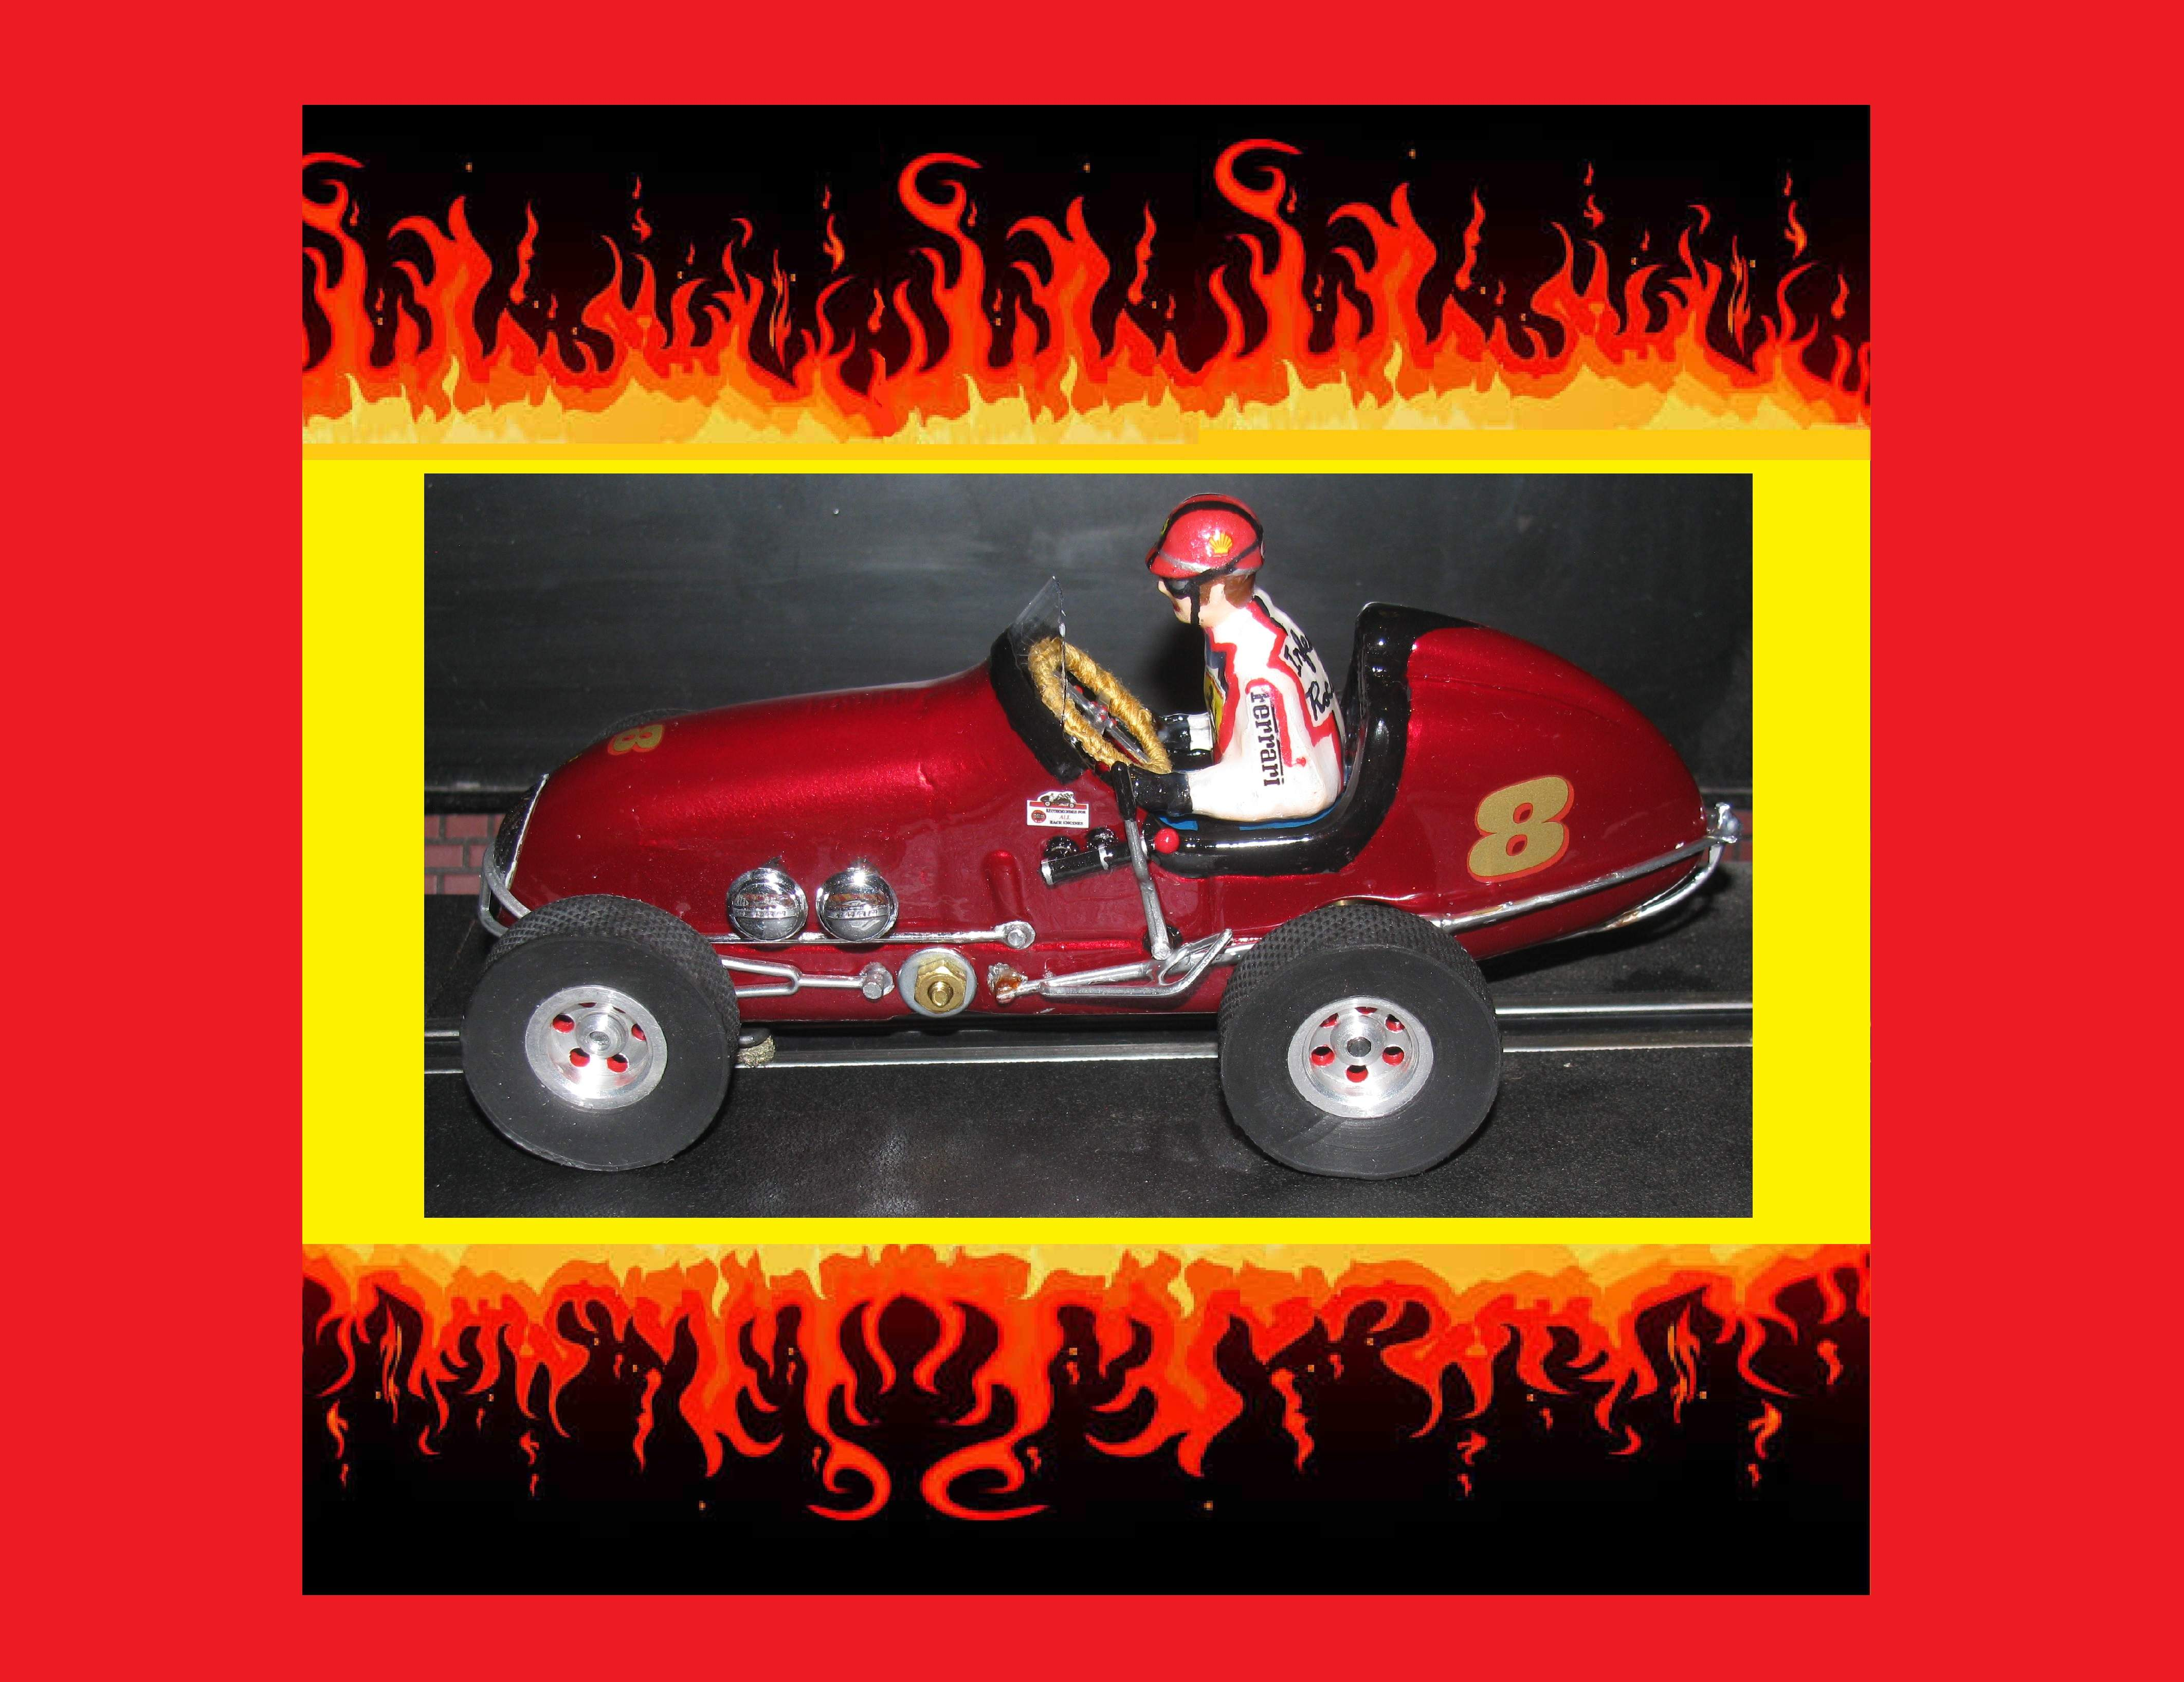 * SOLD * MSRP $499.99 * SPECIAL EASTER SUNDAY PRICE FOR CHARLES E. ONLY ($50 off website price, $200 off eBay price)* MEGA CUSTOM Monogram Midget Racer Inferno Red Kurtis Racing Special Slot Car 1:24 Scale Car #8